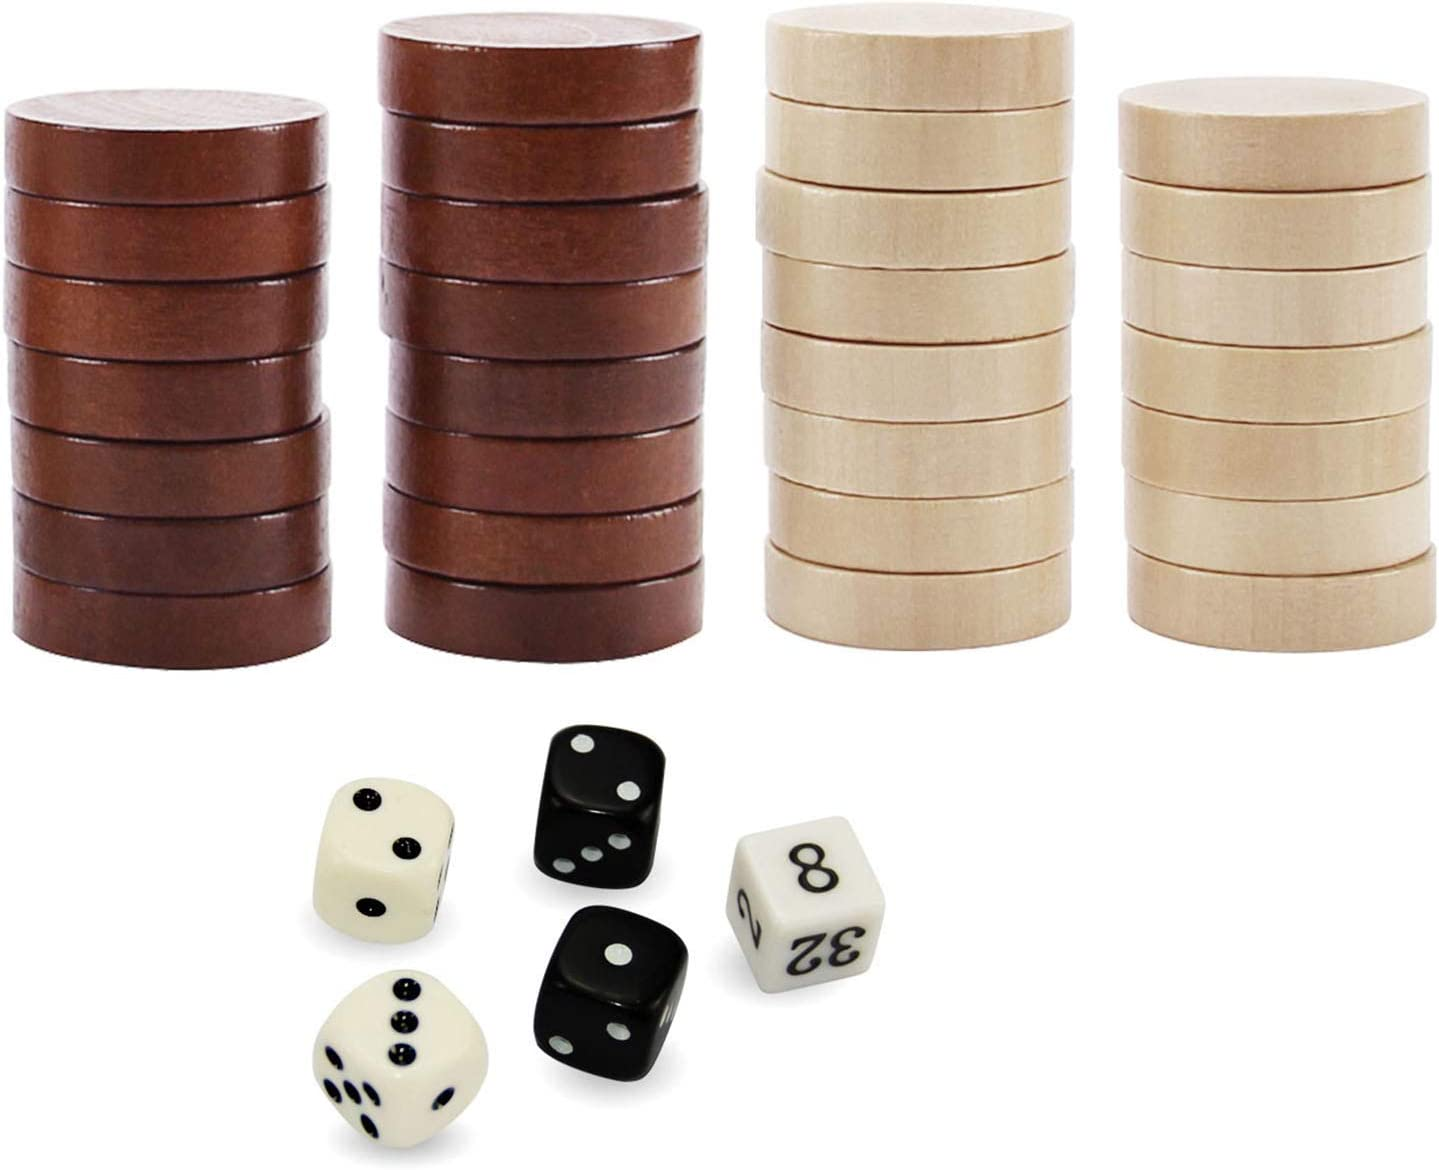 30 Piece Set Backgammon Pieces Mosaic,wood Checkers,Dice Game Pieces,wooden pieces,syria 25 20 or 15 mm CheckersBoard Games pieces 35